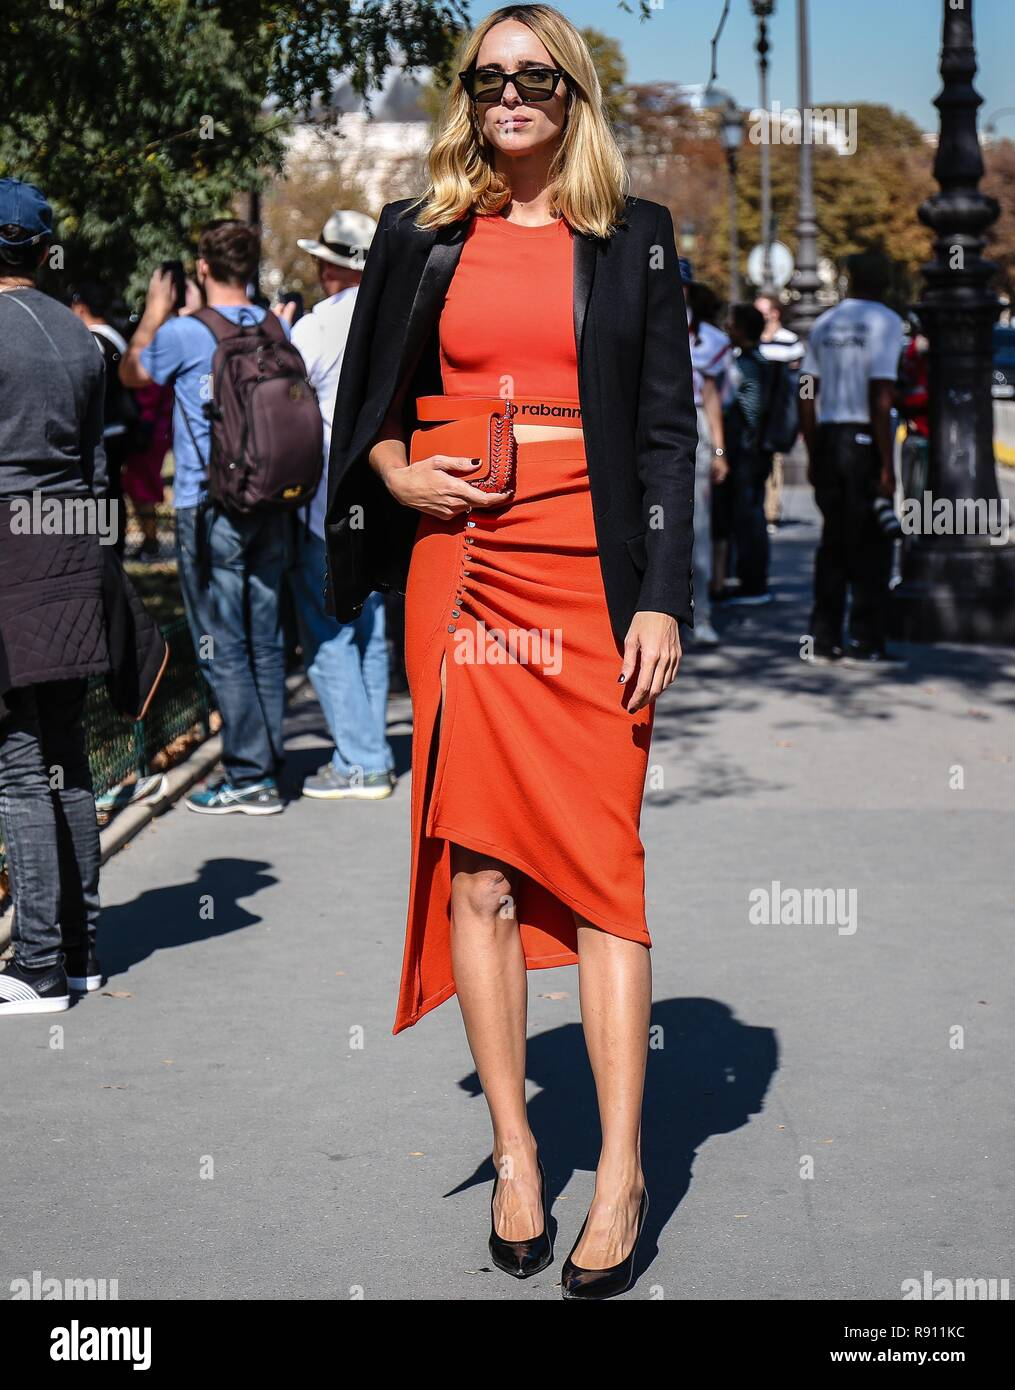 PARIS, France- September 27 2018: Candela Pelizza on the street during the Paris Fashion Week. - Stock Image